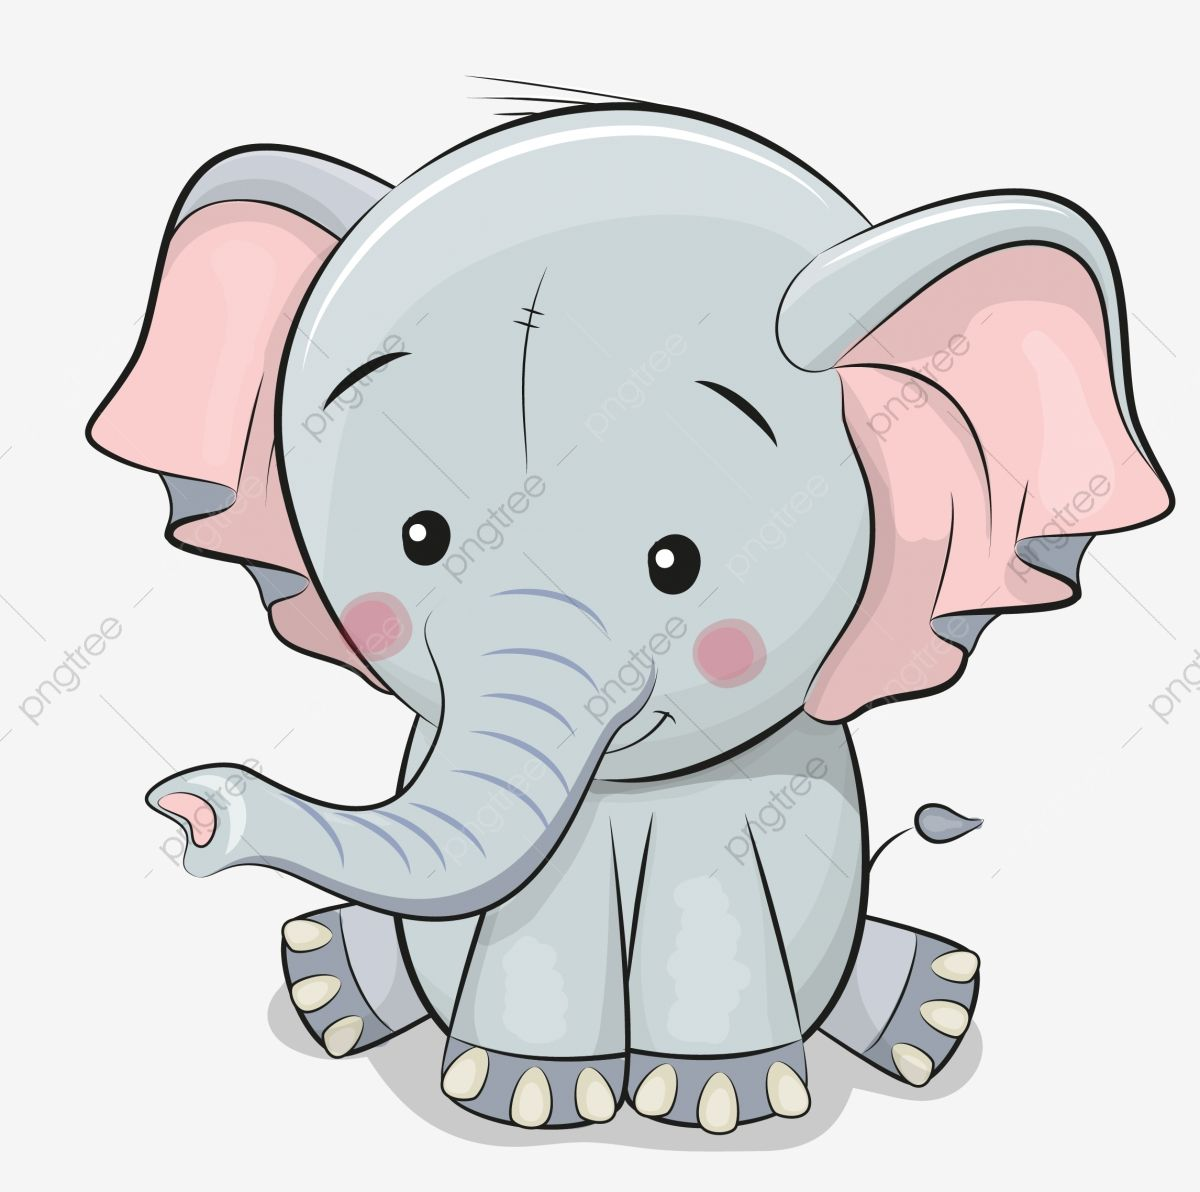 Elephant Elephant Cartoon Elephant Cartoon Animals Cartoon Clipart Elephant Hand Drawn Elephant Png And Vector With Transparent Background For Free Download Baby Elephant Cartoon Cartoon Elephant Elephant Images